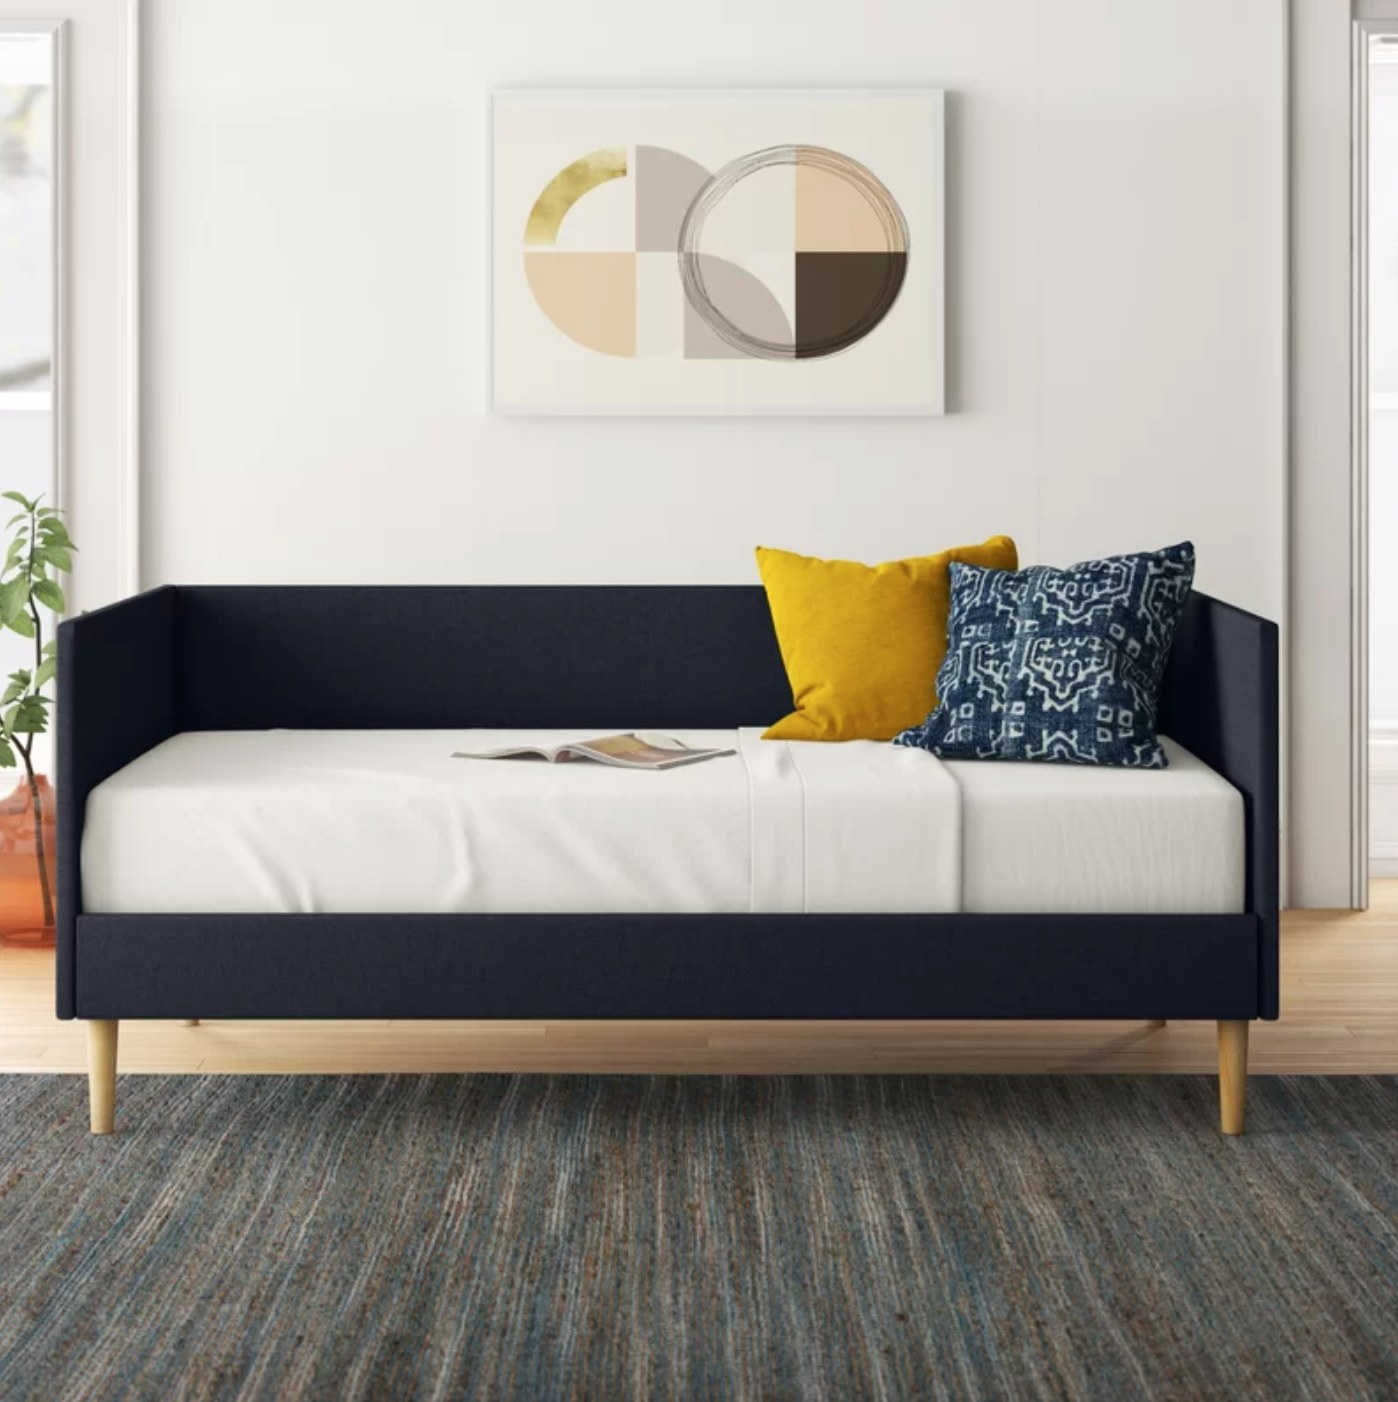 The daybed in navy